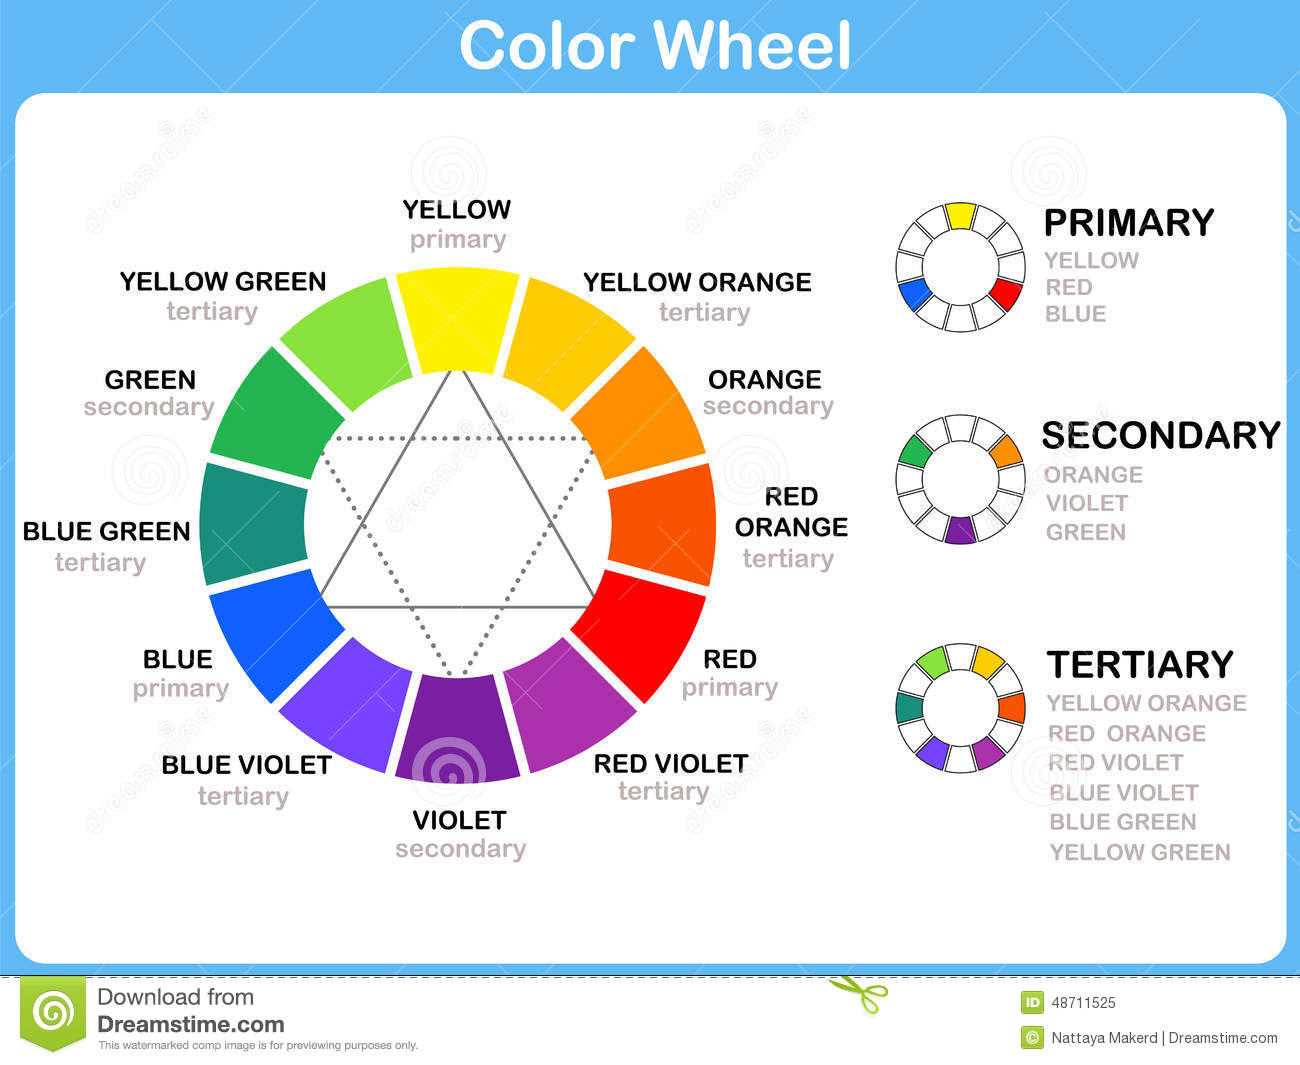 Worksheets Color Theory Worksheet color wheel worksheet for kids stock vector image 48711525 blue red worksheet